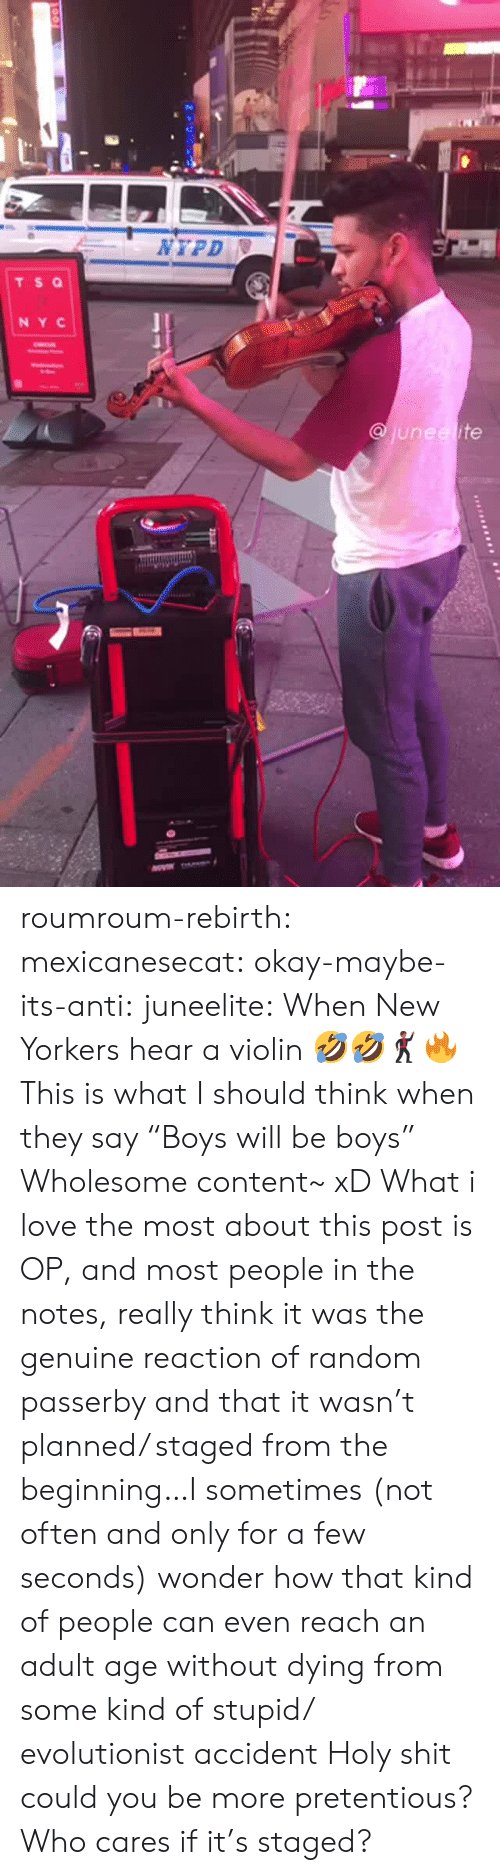 "pretentious: NYPD  TS Q  NY C  junee ite roumroum-rebirth:  mexicanesecat:  okay-maybe-its-anti:  juneelite: When New Yorkers hear a violin 🤣🤣🕺🏾🔥  This is what I should think when they say ""Boys will be boys""  Wholesome content~ xD  What i love the most about this post is OP, and most people in the notes, really think it was the genuine reaction of random passerby and that it wasn't planned/ staged from the beginning…I sometimes (not often and only for a few seconds) wonder how that kind of people can even reach an adult age without dying from some kind of stupid/ evolutionist accident  Holy shit could you be more pretentious? Who cares if it's staged?"